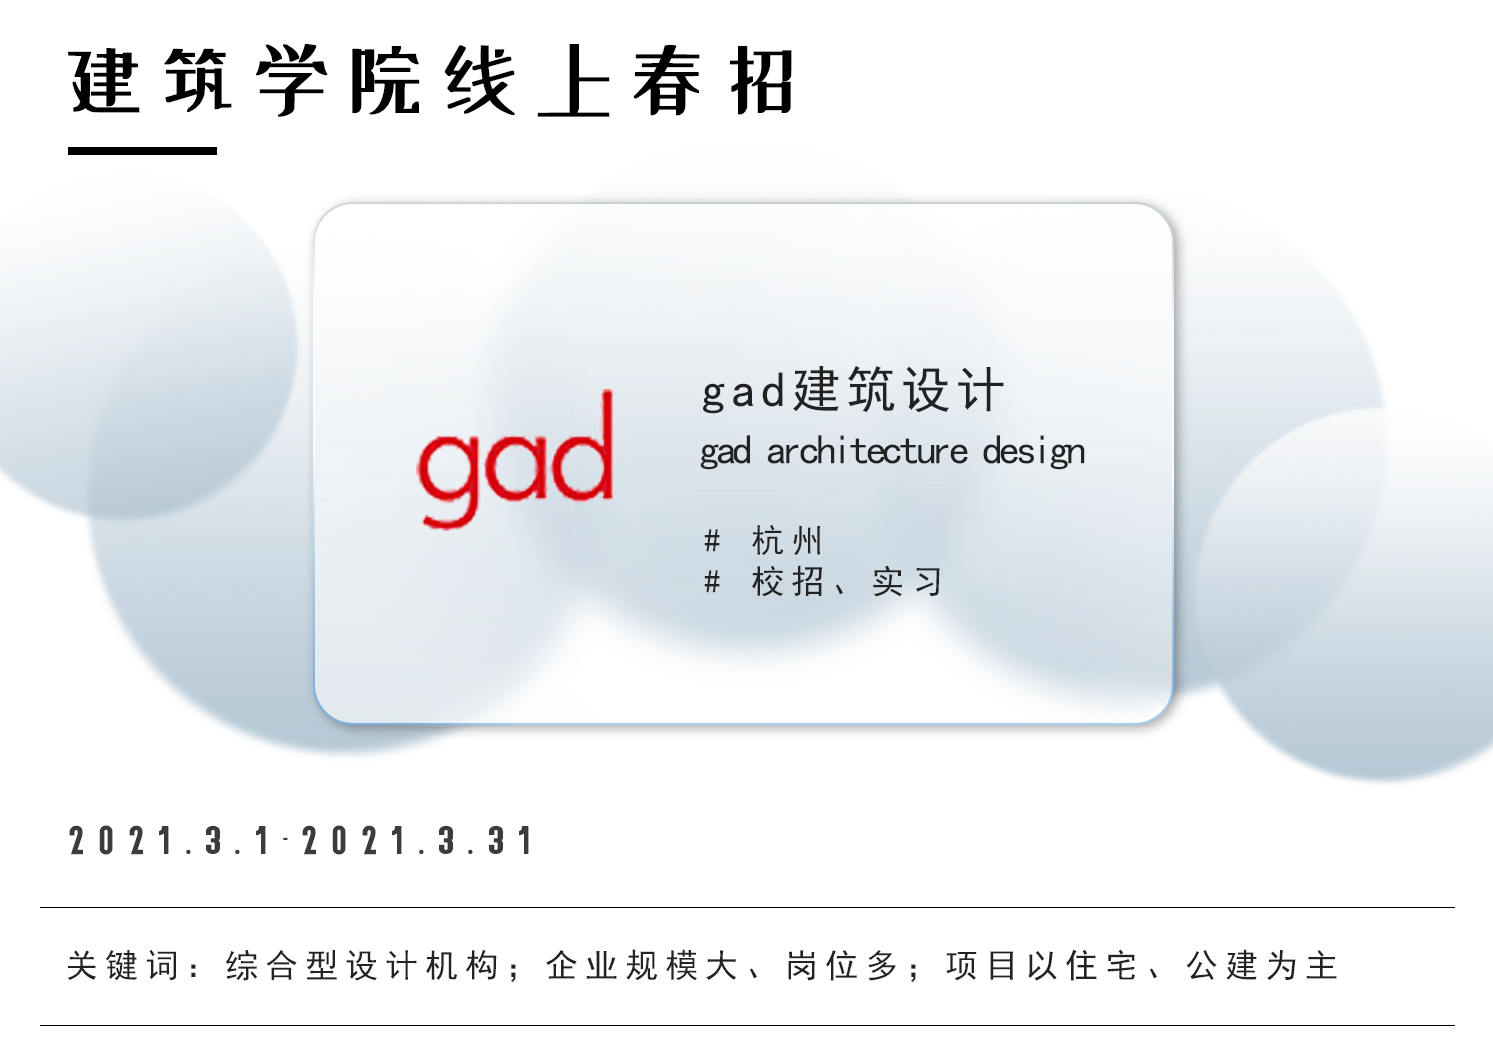 gad首图.png